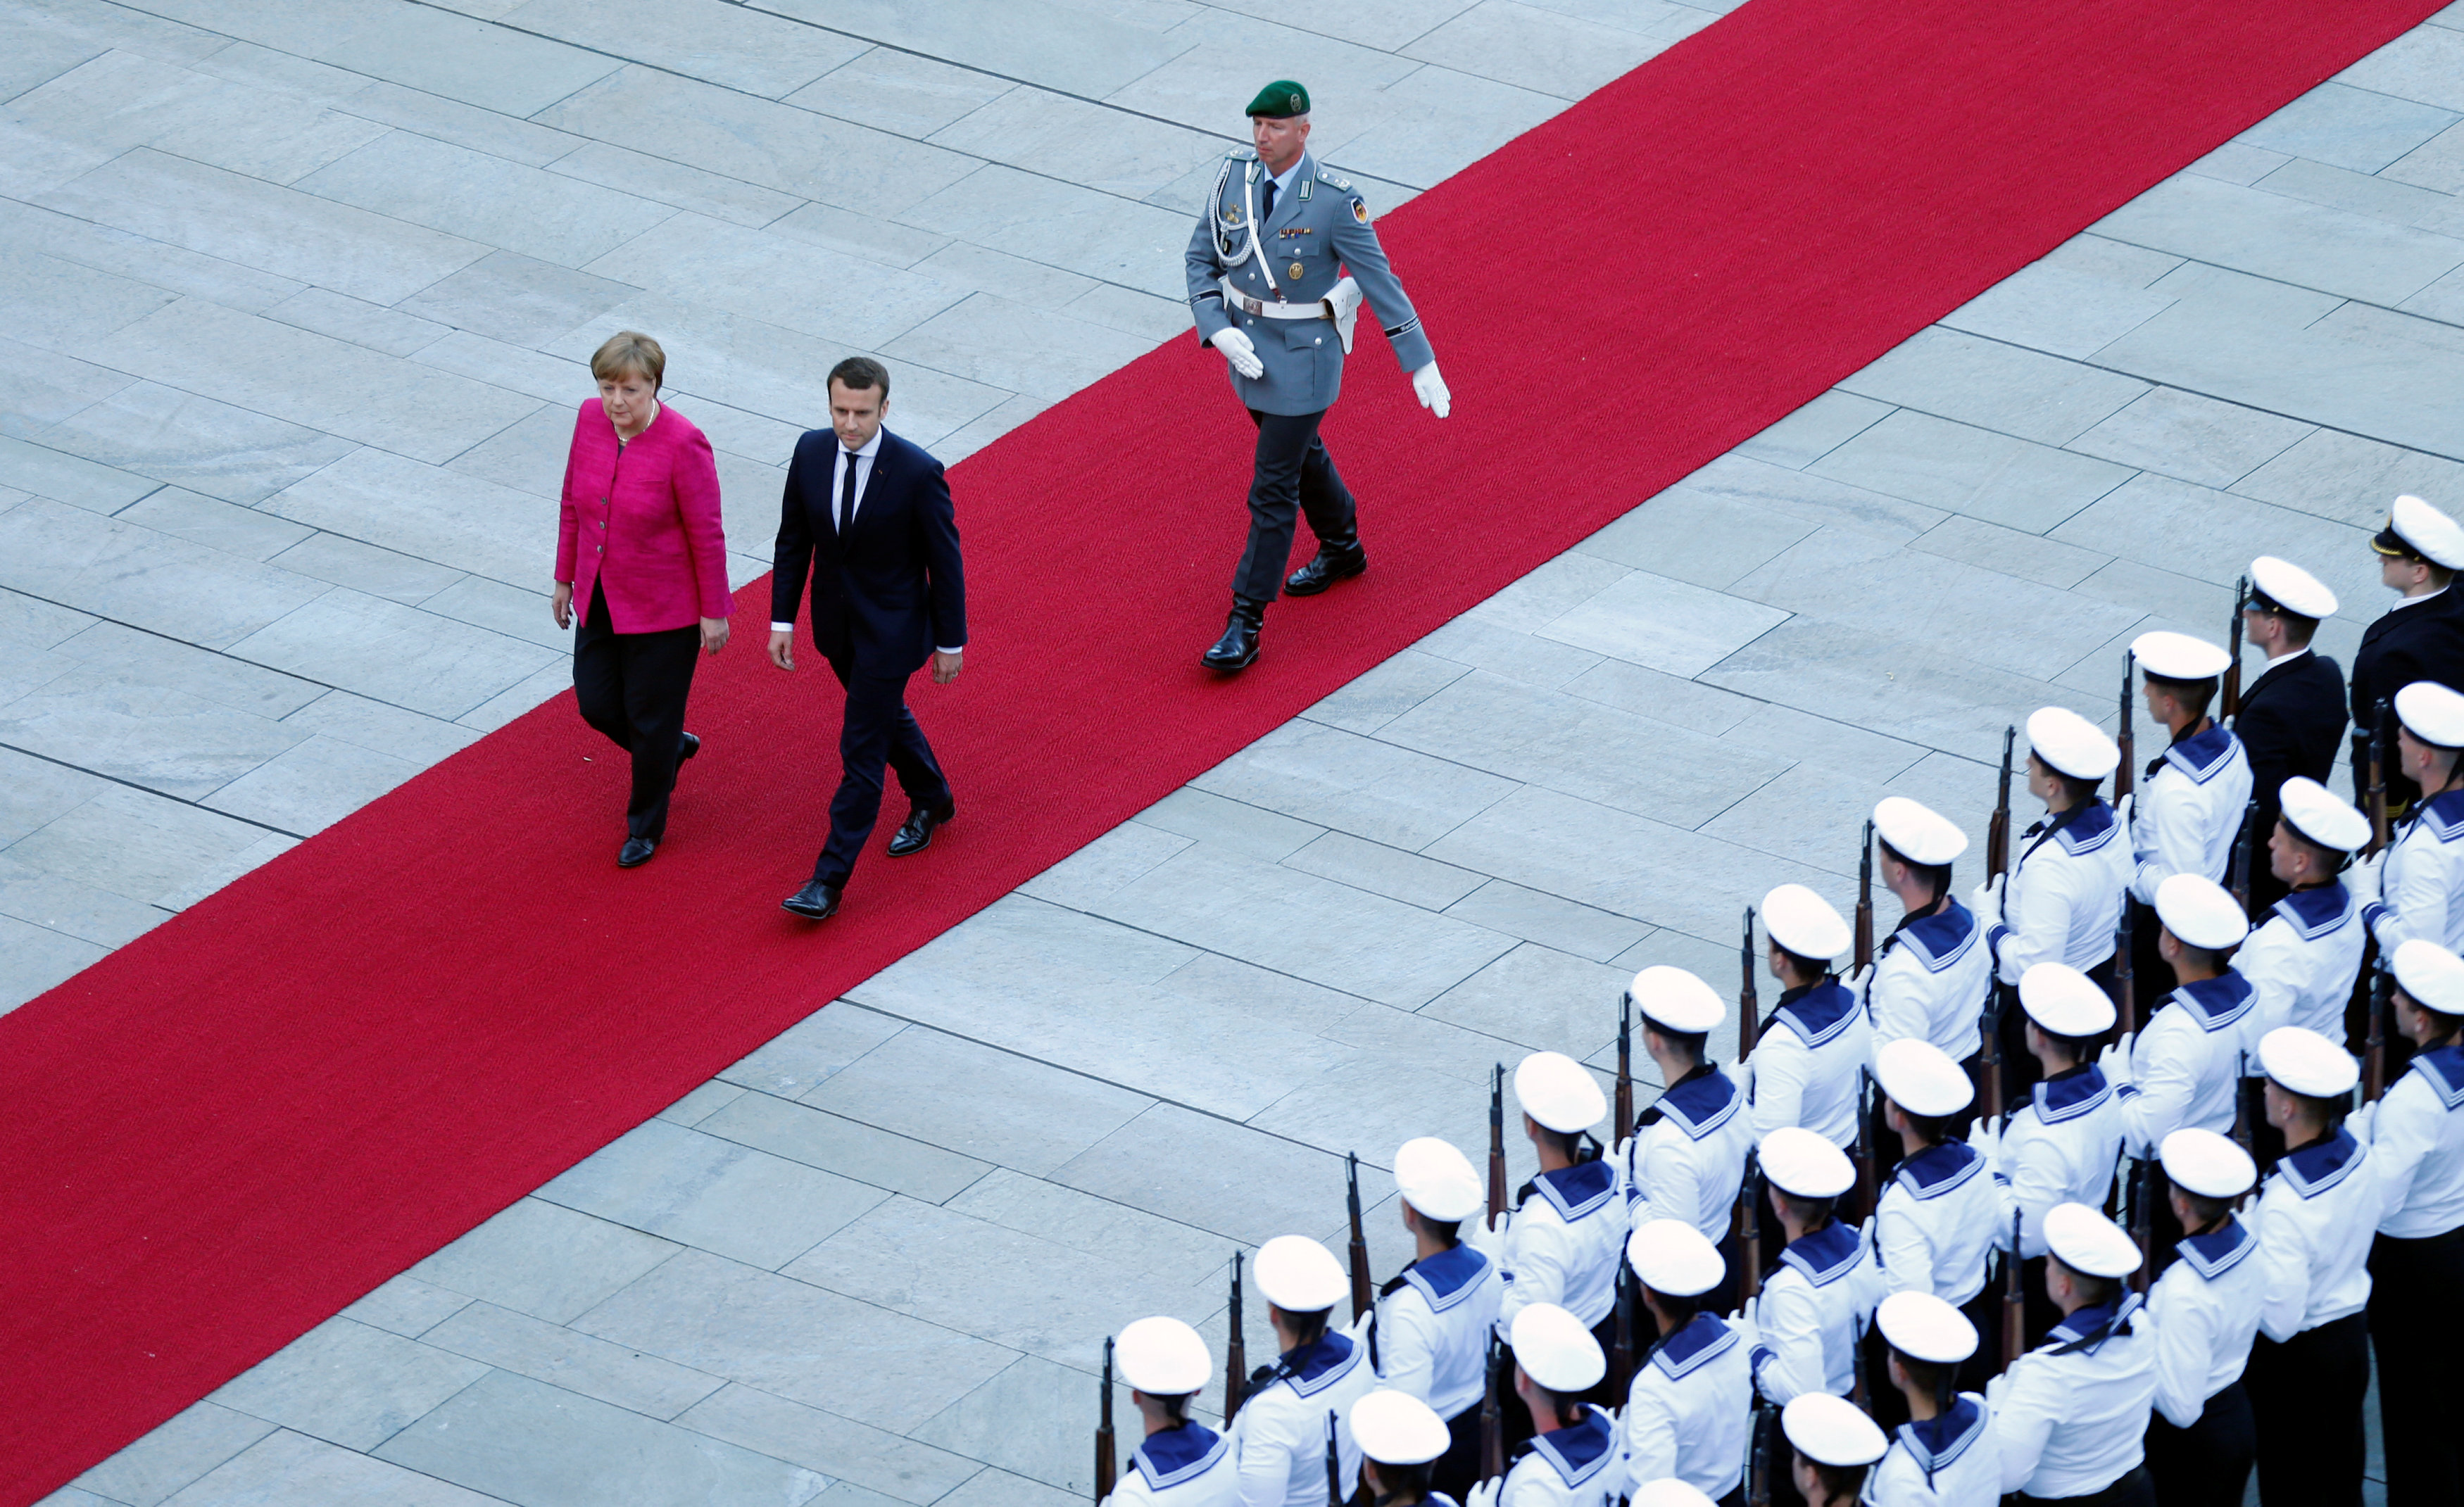 German Chancellor Angela Merkel and French President Emmanuel Macron arrive at a ceremony at the Chancellery in Berlin, Germany on May 15, 2017.   (REUTERS/Hannibal Hanschke)